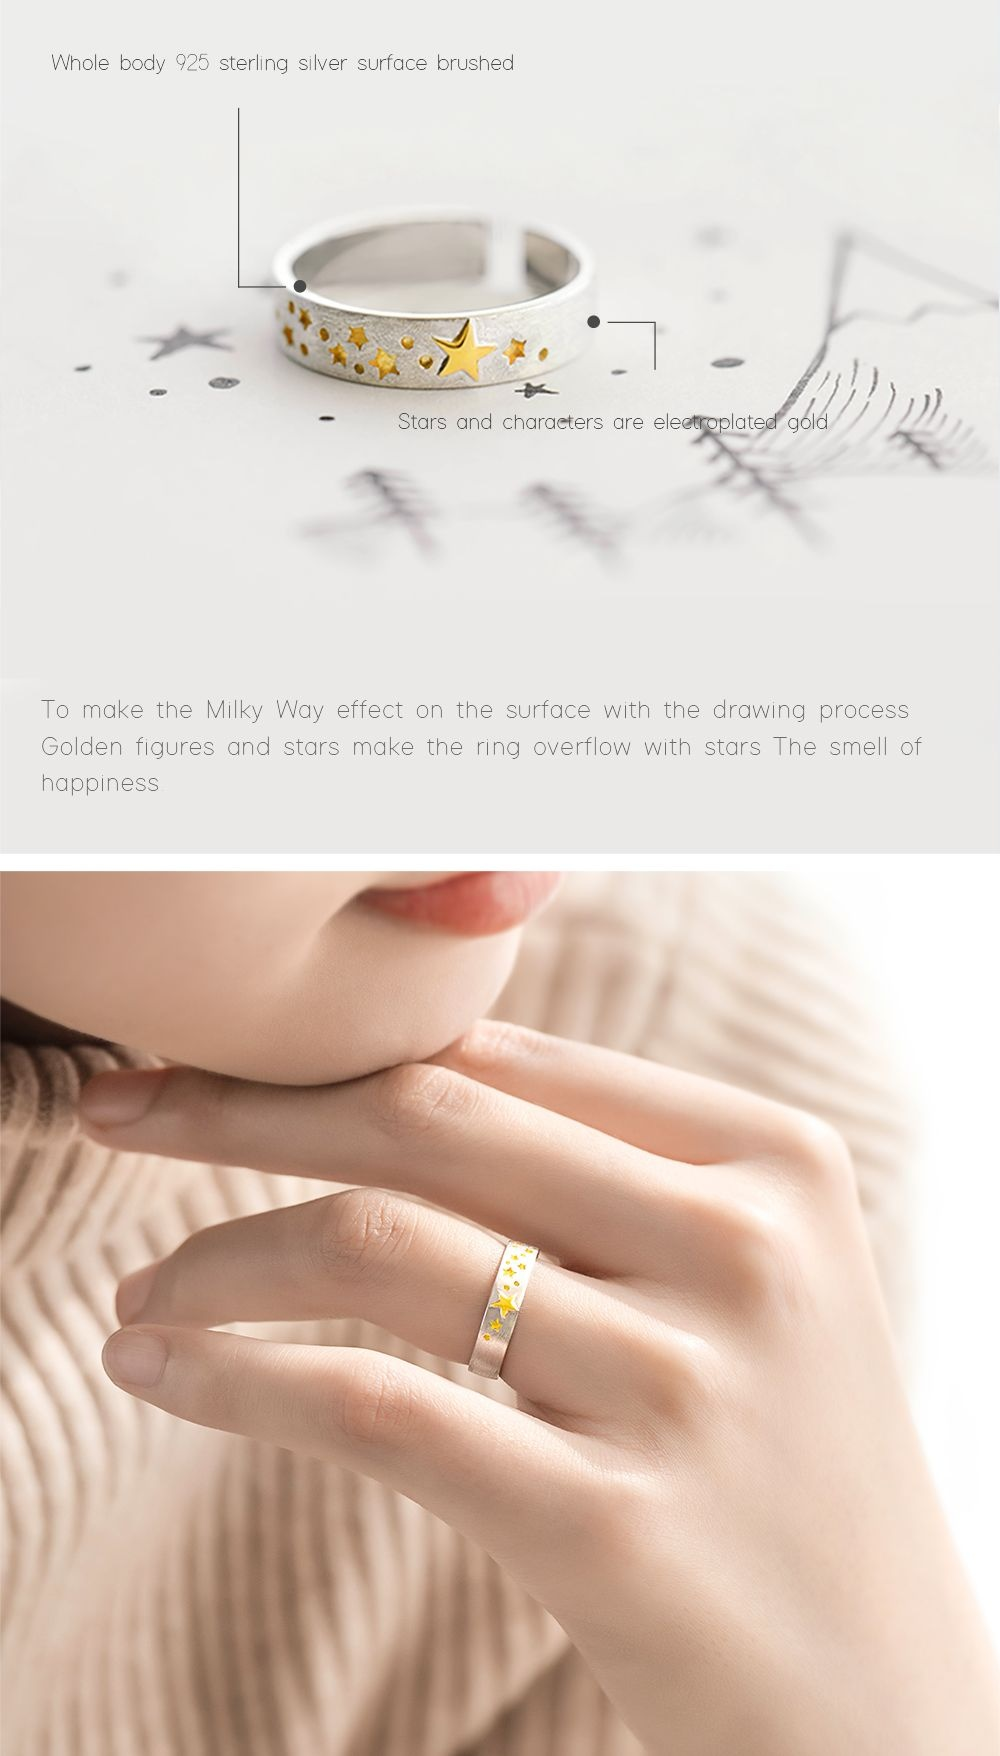 3D Concave Gold Star Rings Chasing Stars